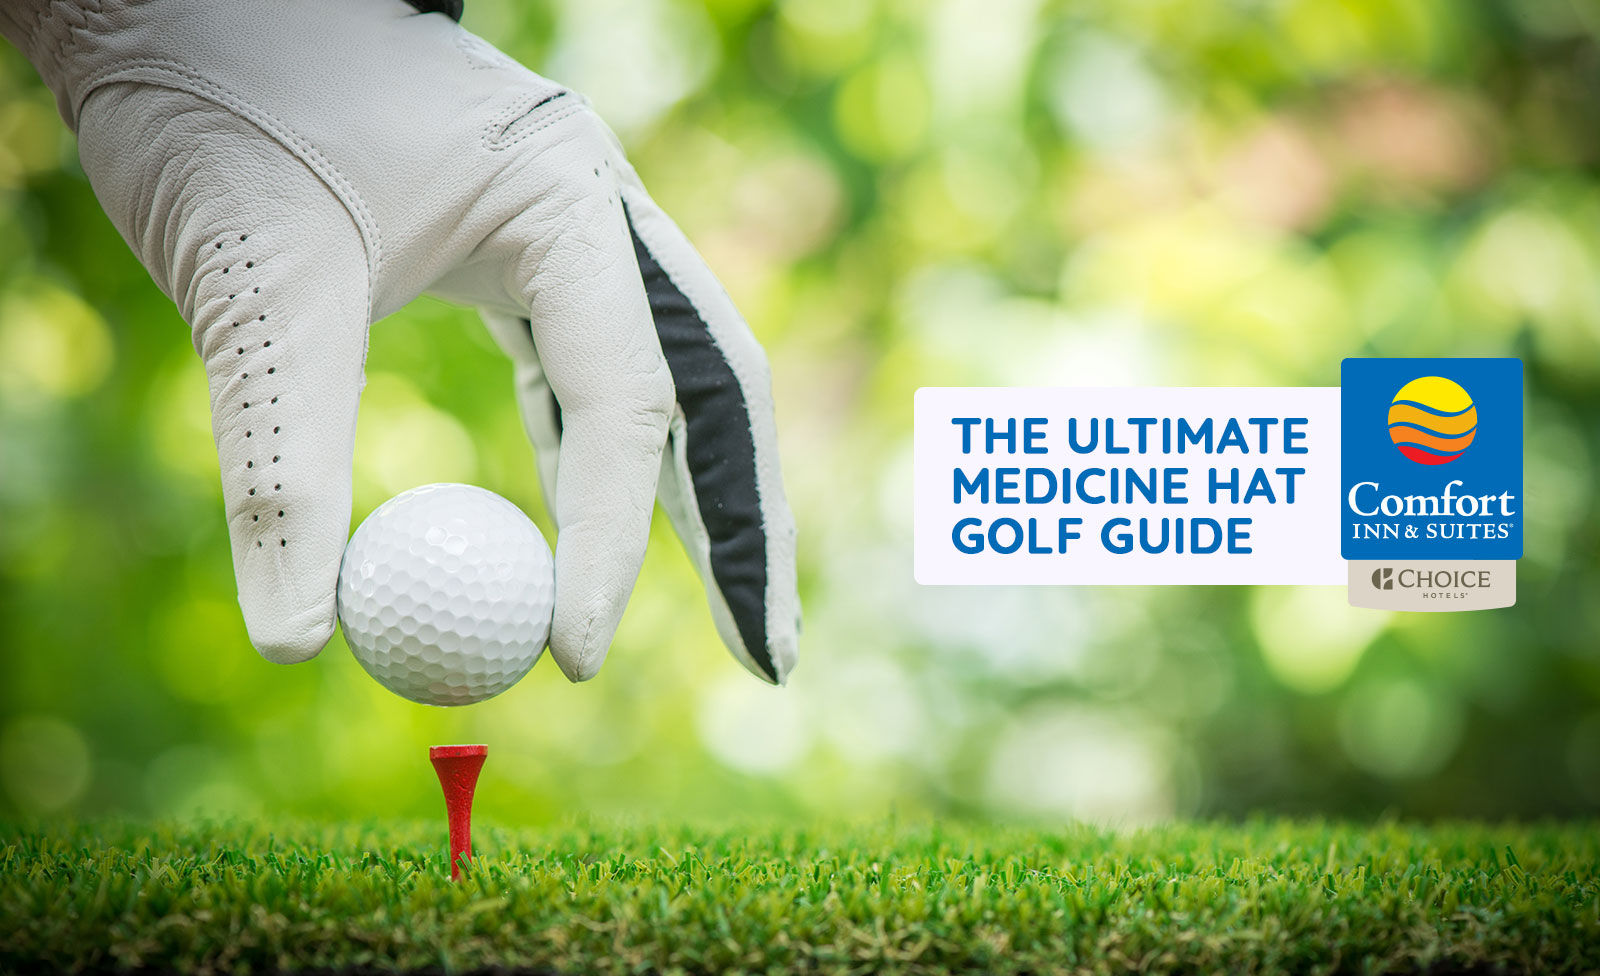 Read our ultimate golf guide and get ready to hit the links when staying at the Medicine Hat Comfort Inn and Suites.